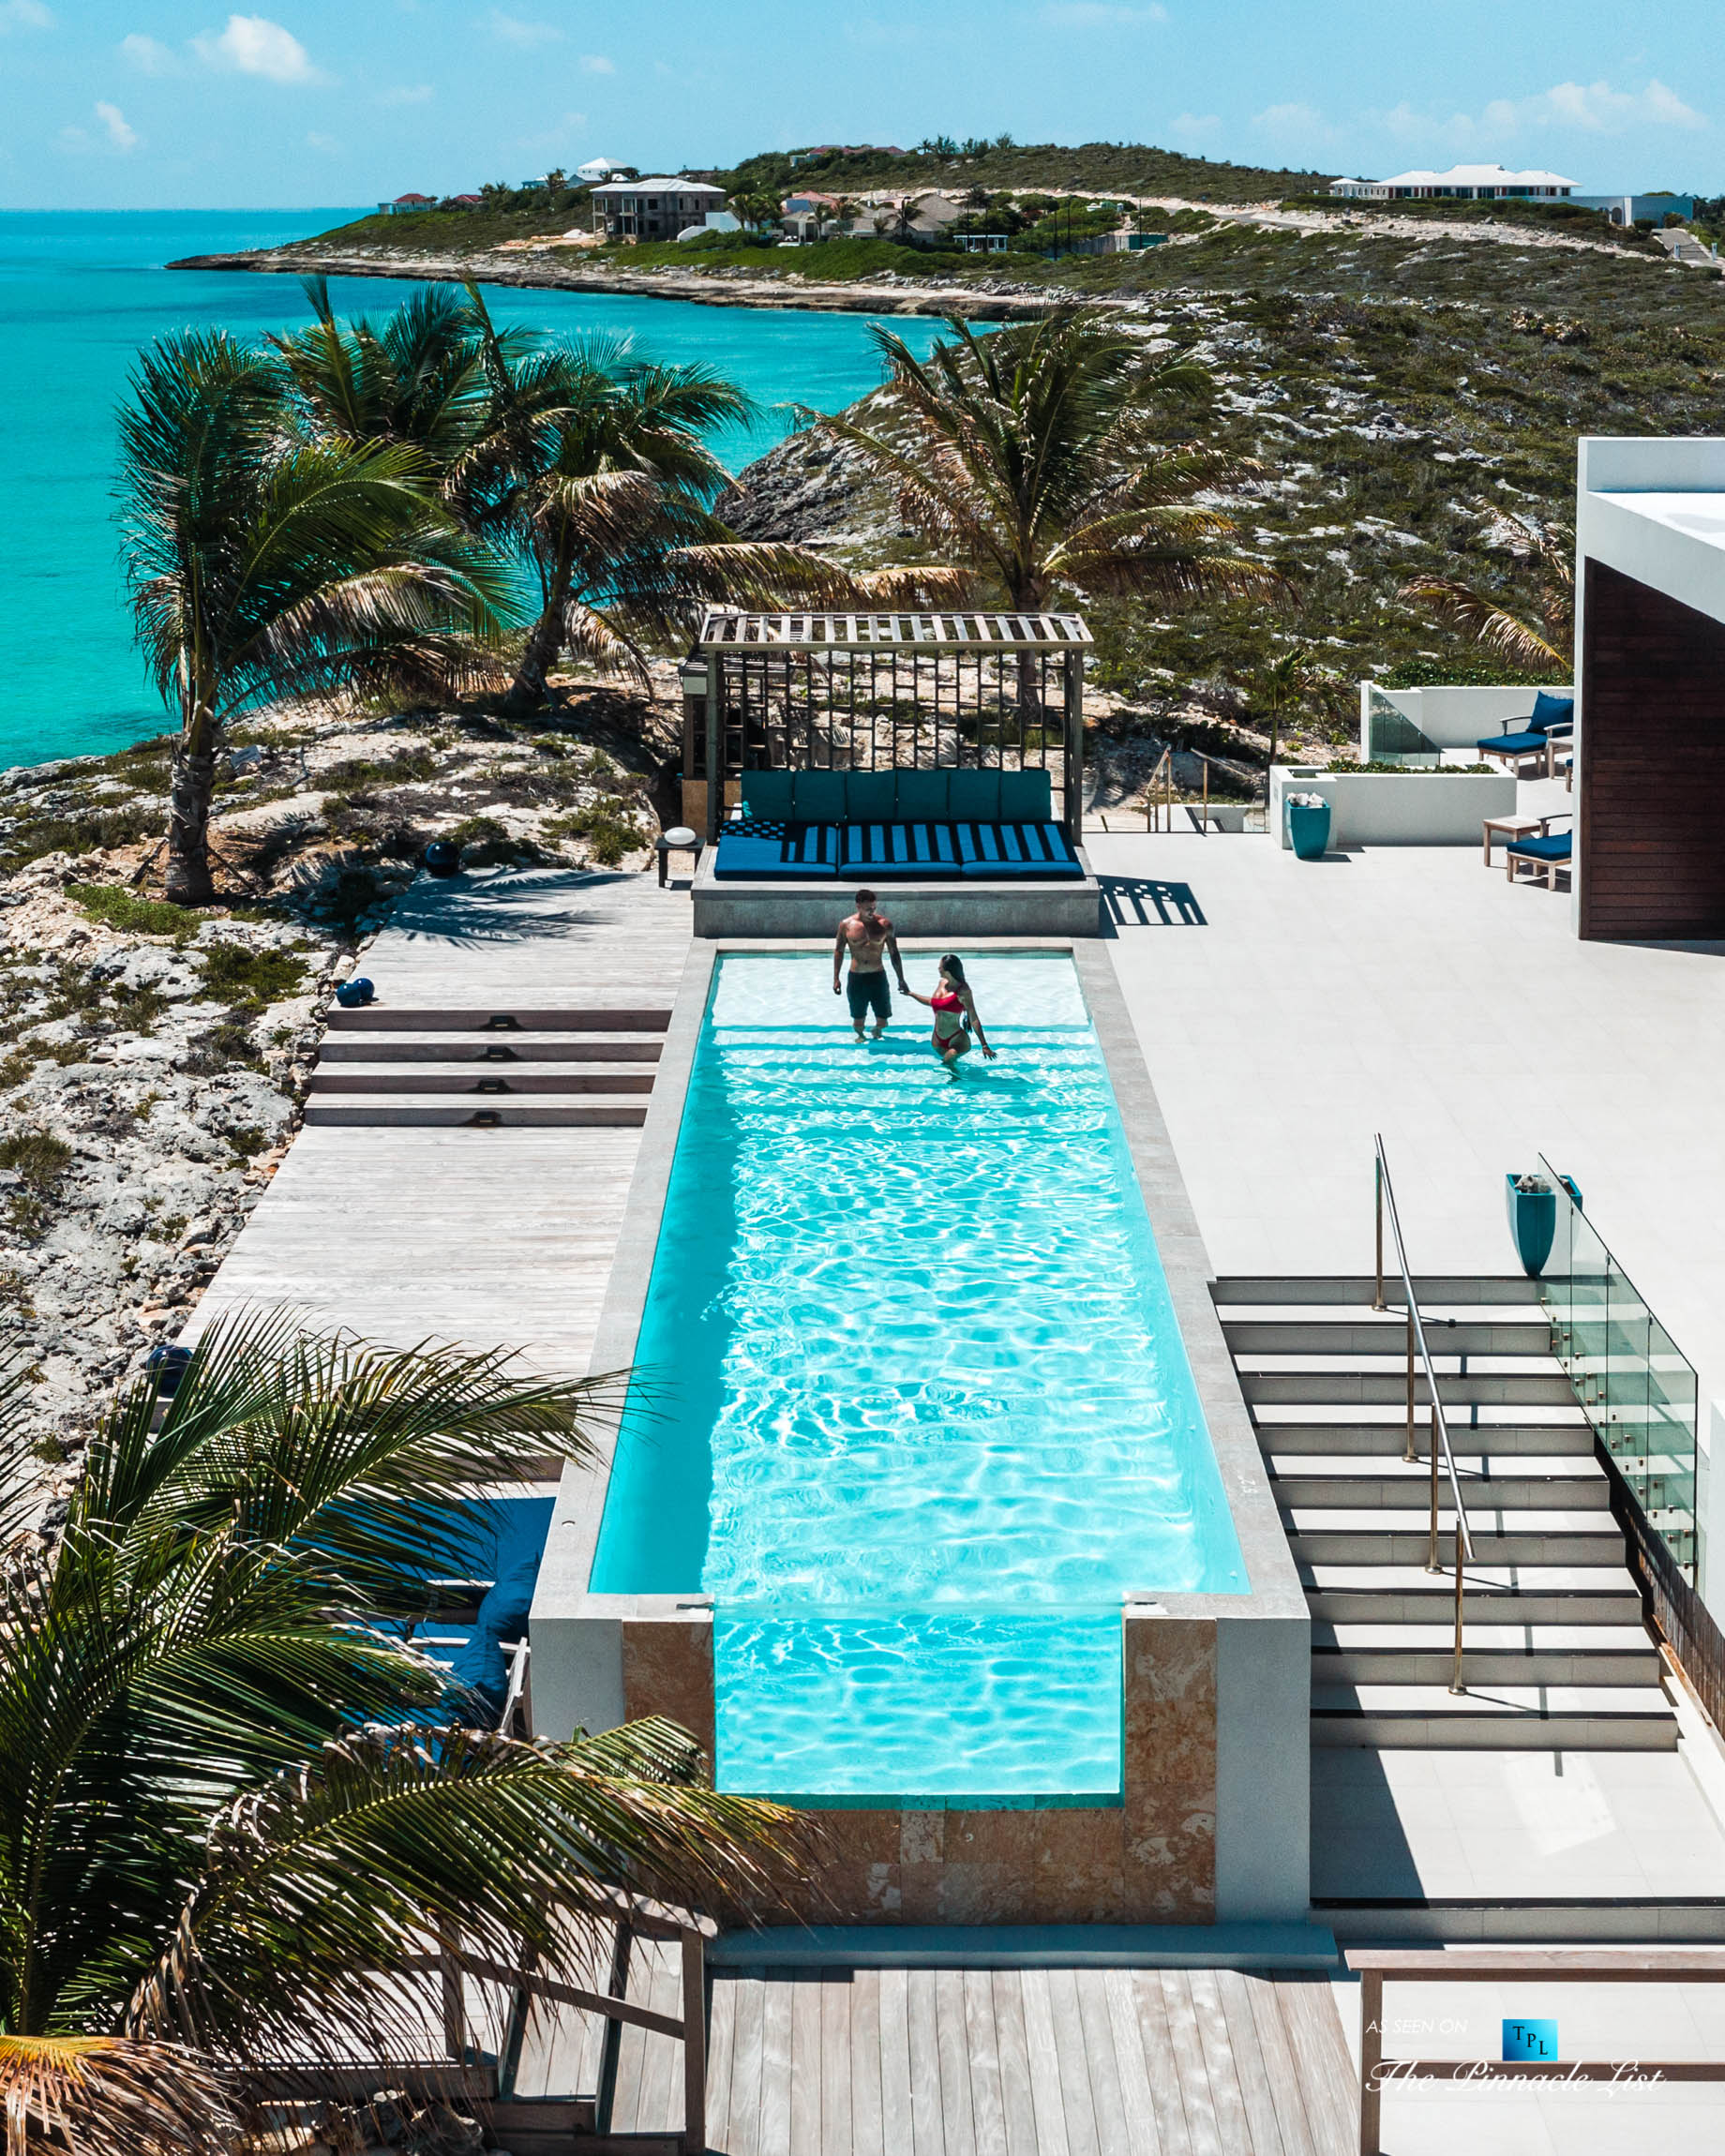 Tip of the Tail Villa - Providenciales, Turks and Caicos Islands - Caribbean Villa Private Infinity Pool - Luxury Real Estate - South Shore Peninsula Home